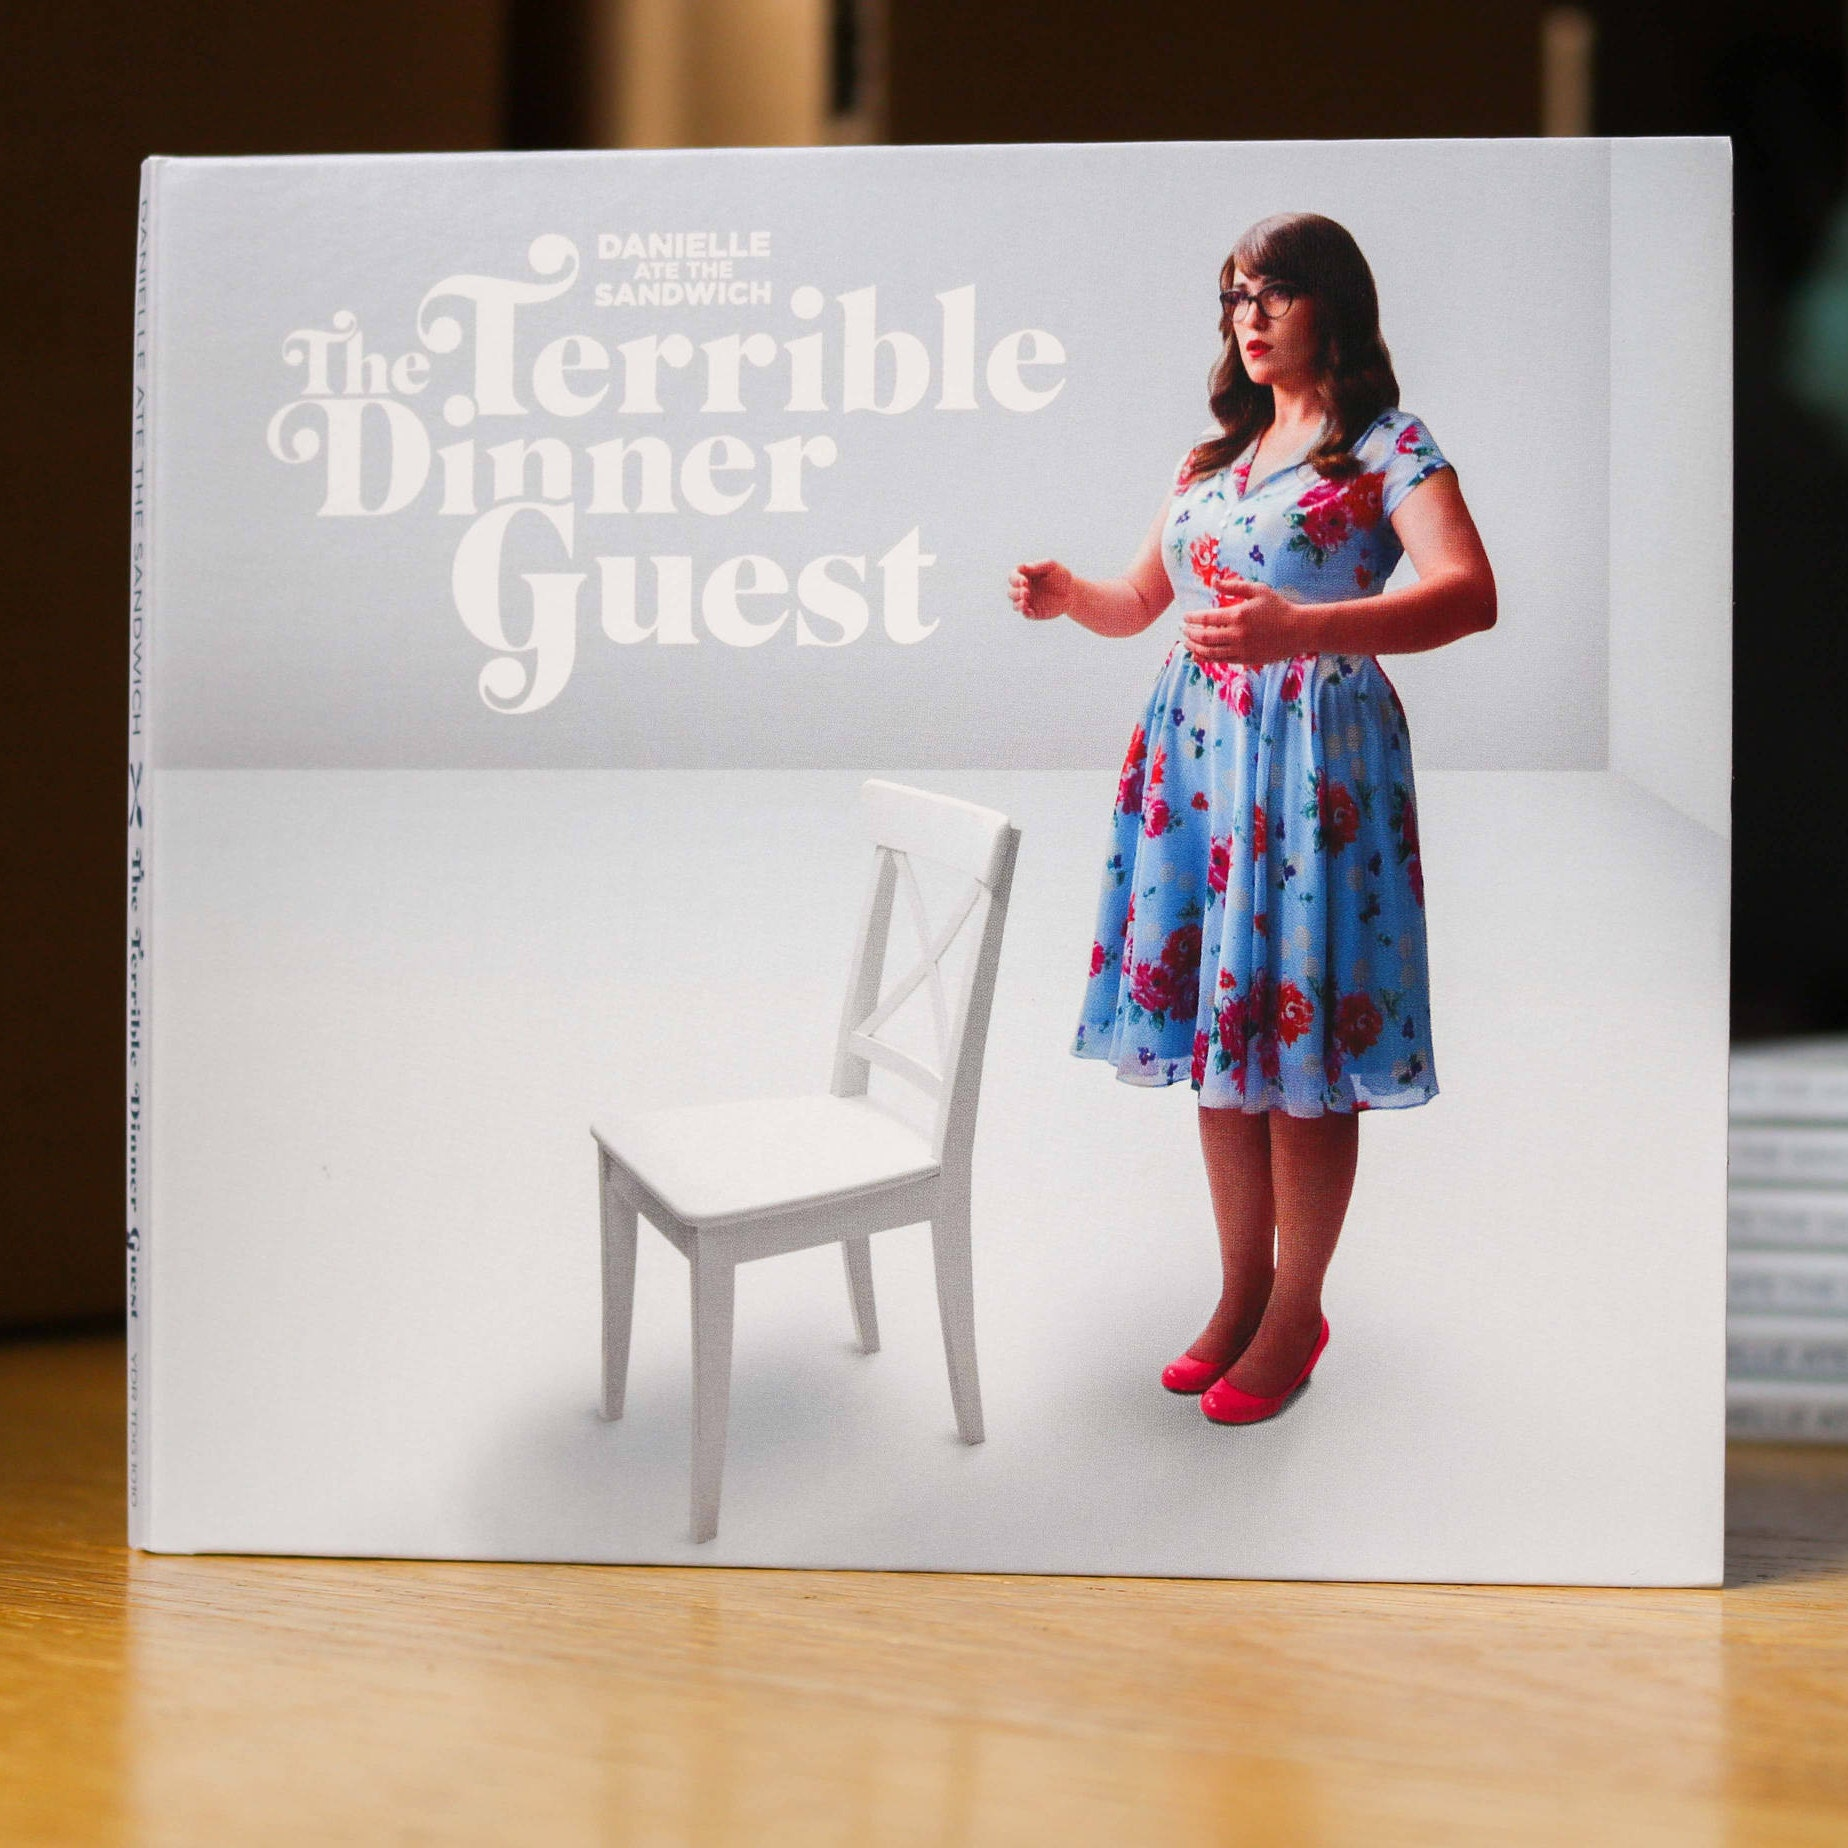 The Terrible Dinner Guest album by Danielle Ate the Sandwich